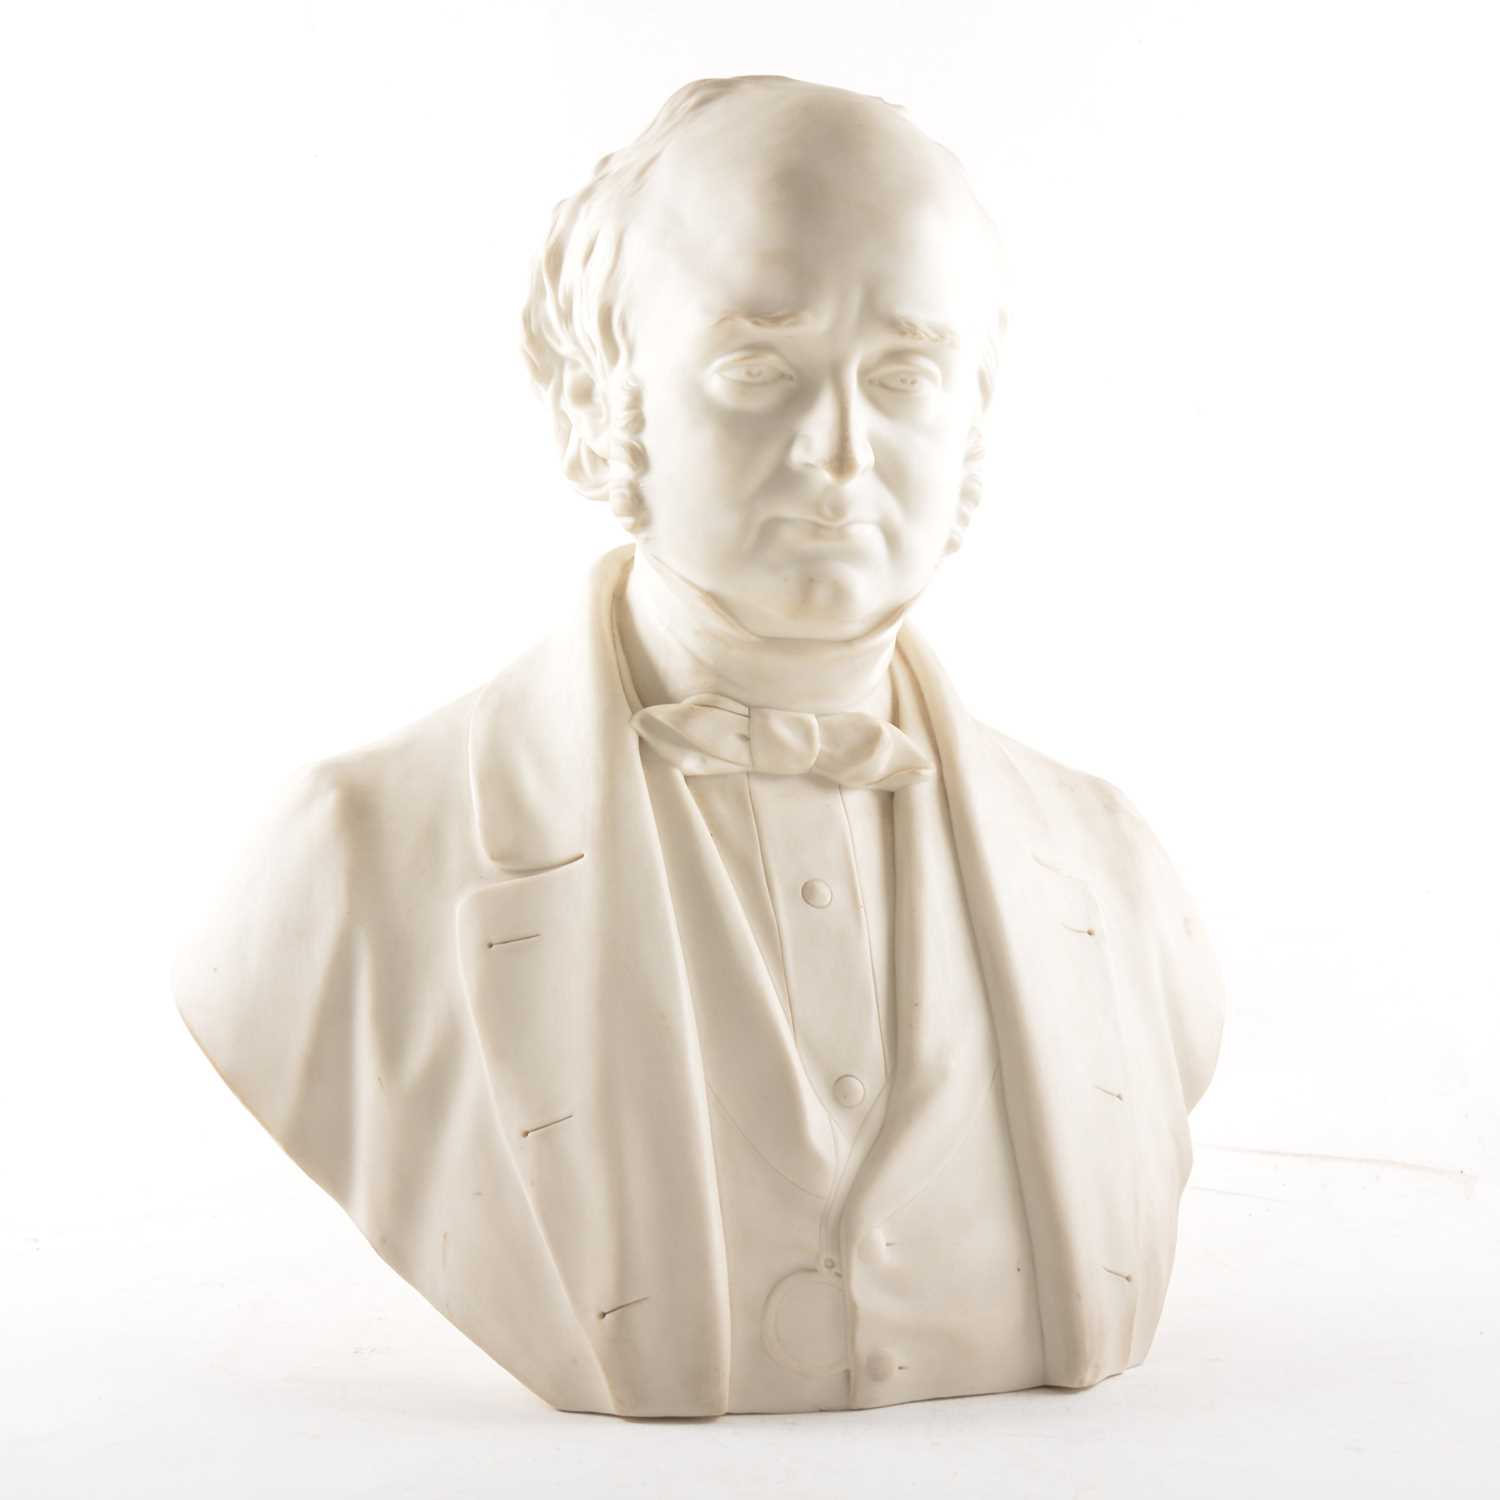 Lot 7 - A Parian ware bust of Dr Todd FRS, by Matthew Noble